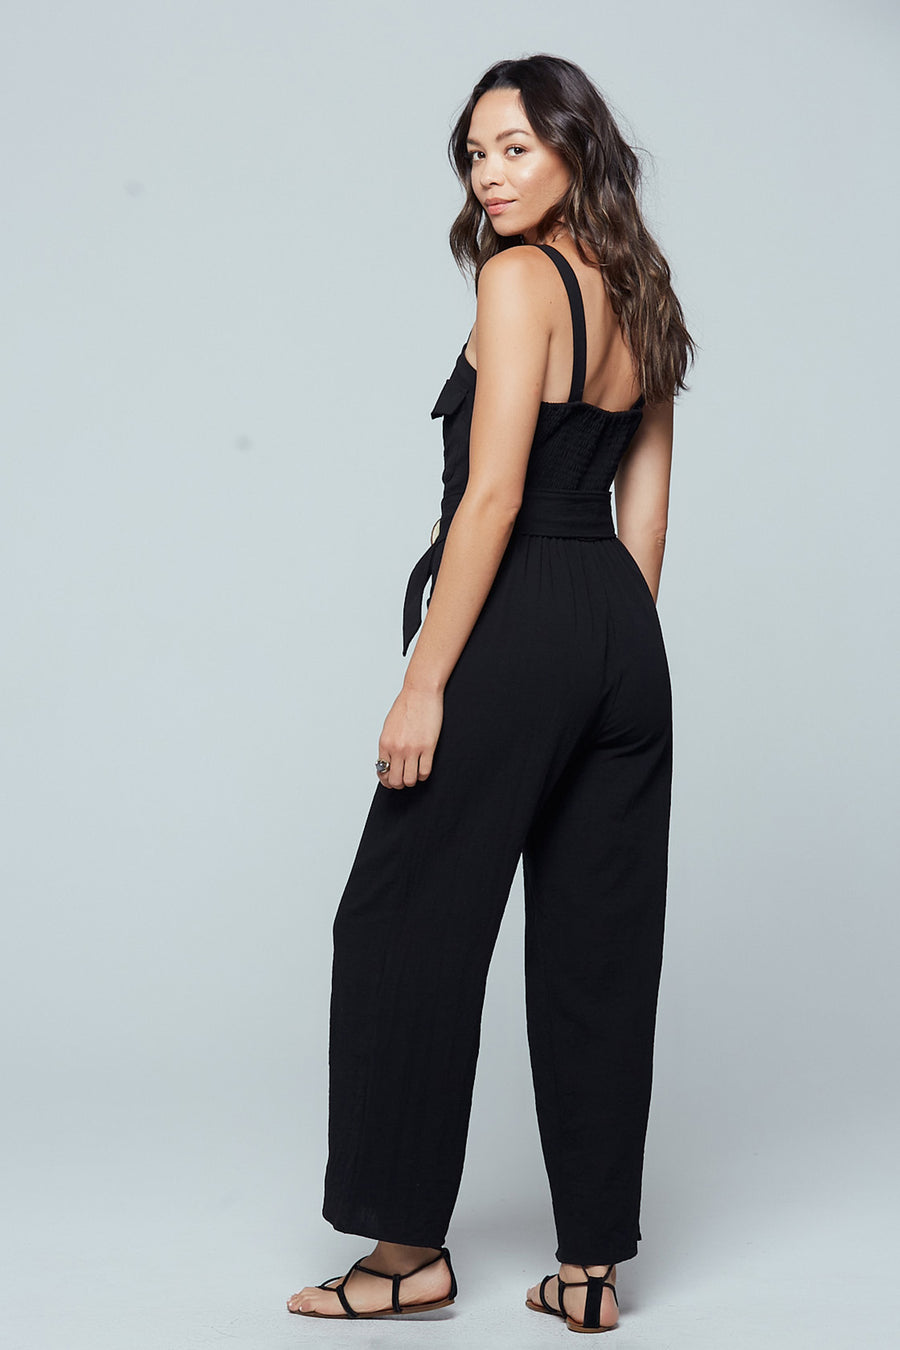 Geneva Black Sleeveless Jumpsuit Master